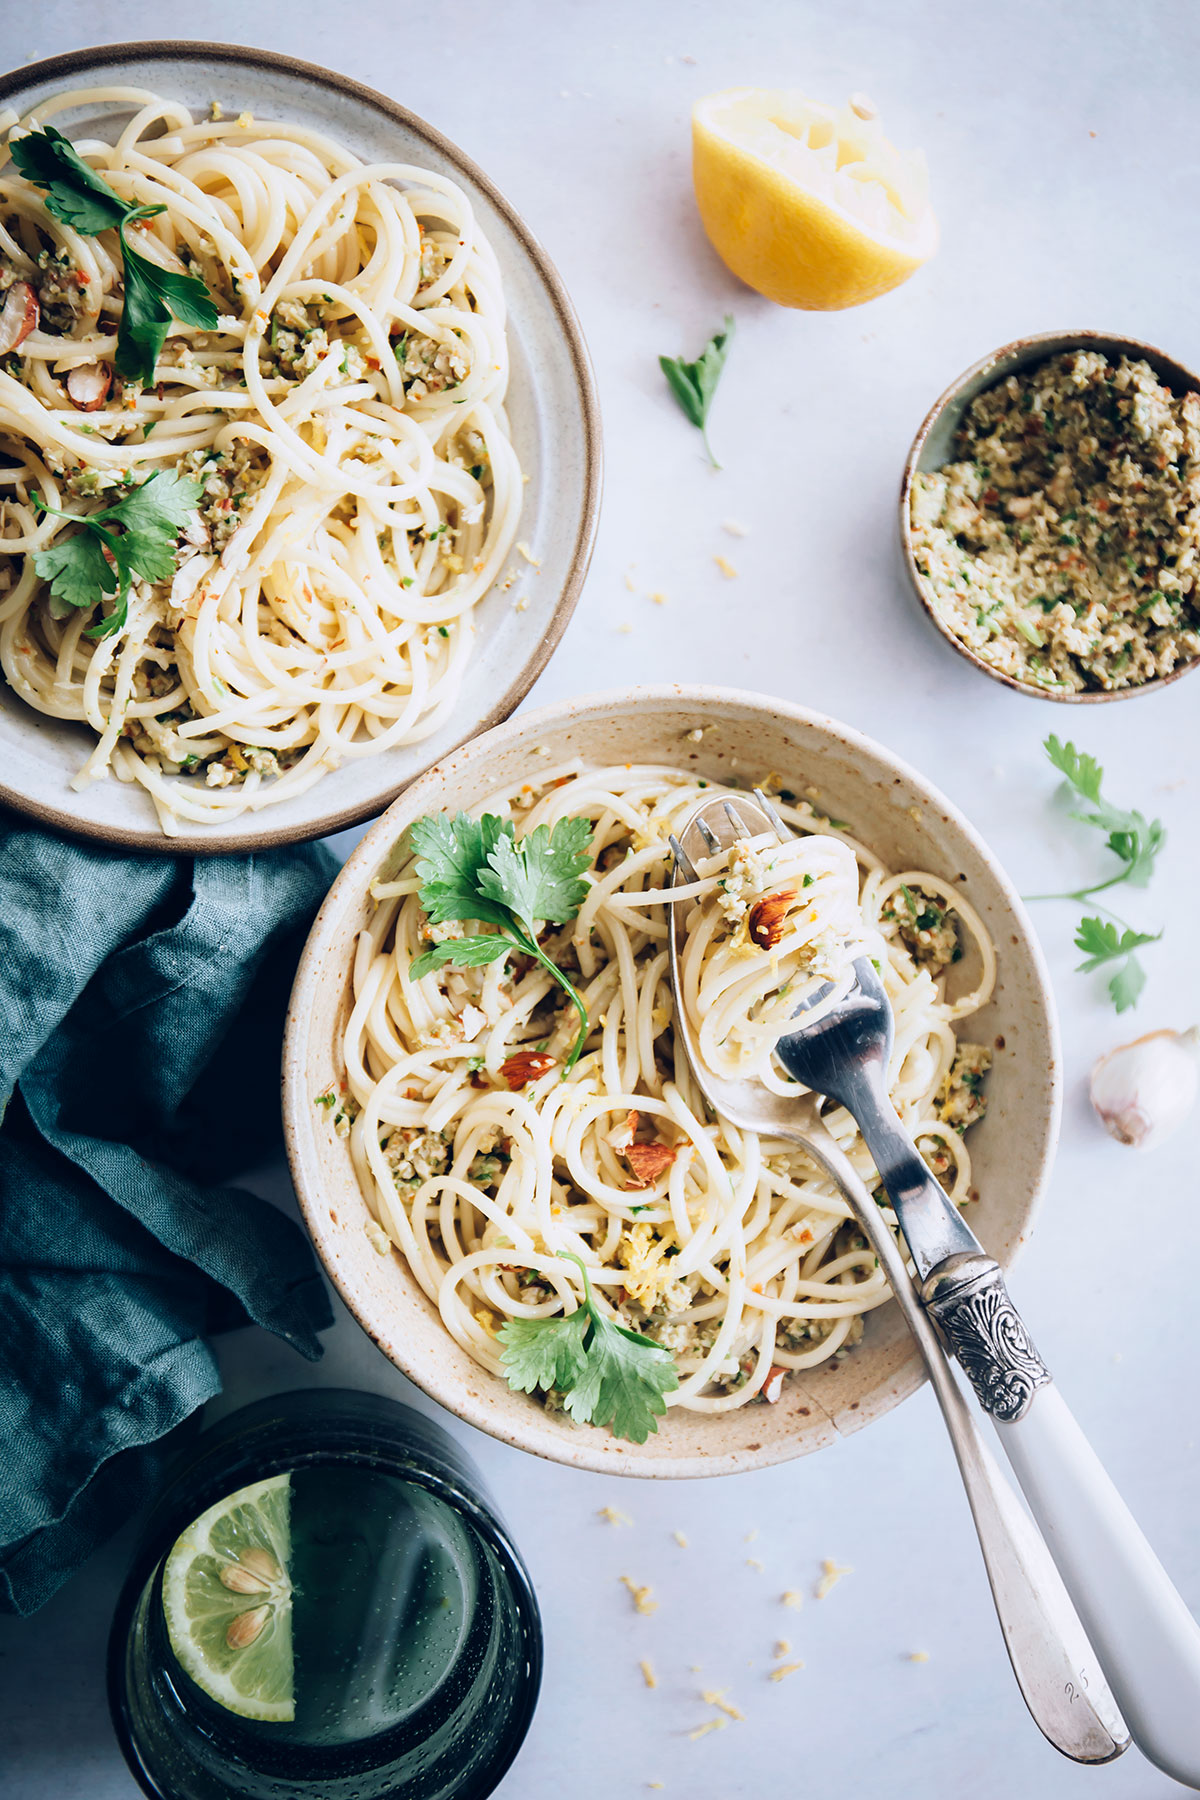 Spaghetti with Toasted Almond and Green Olive Pesto